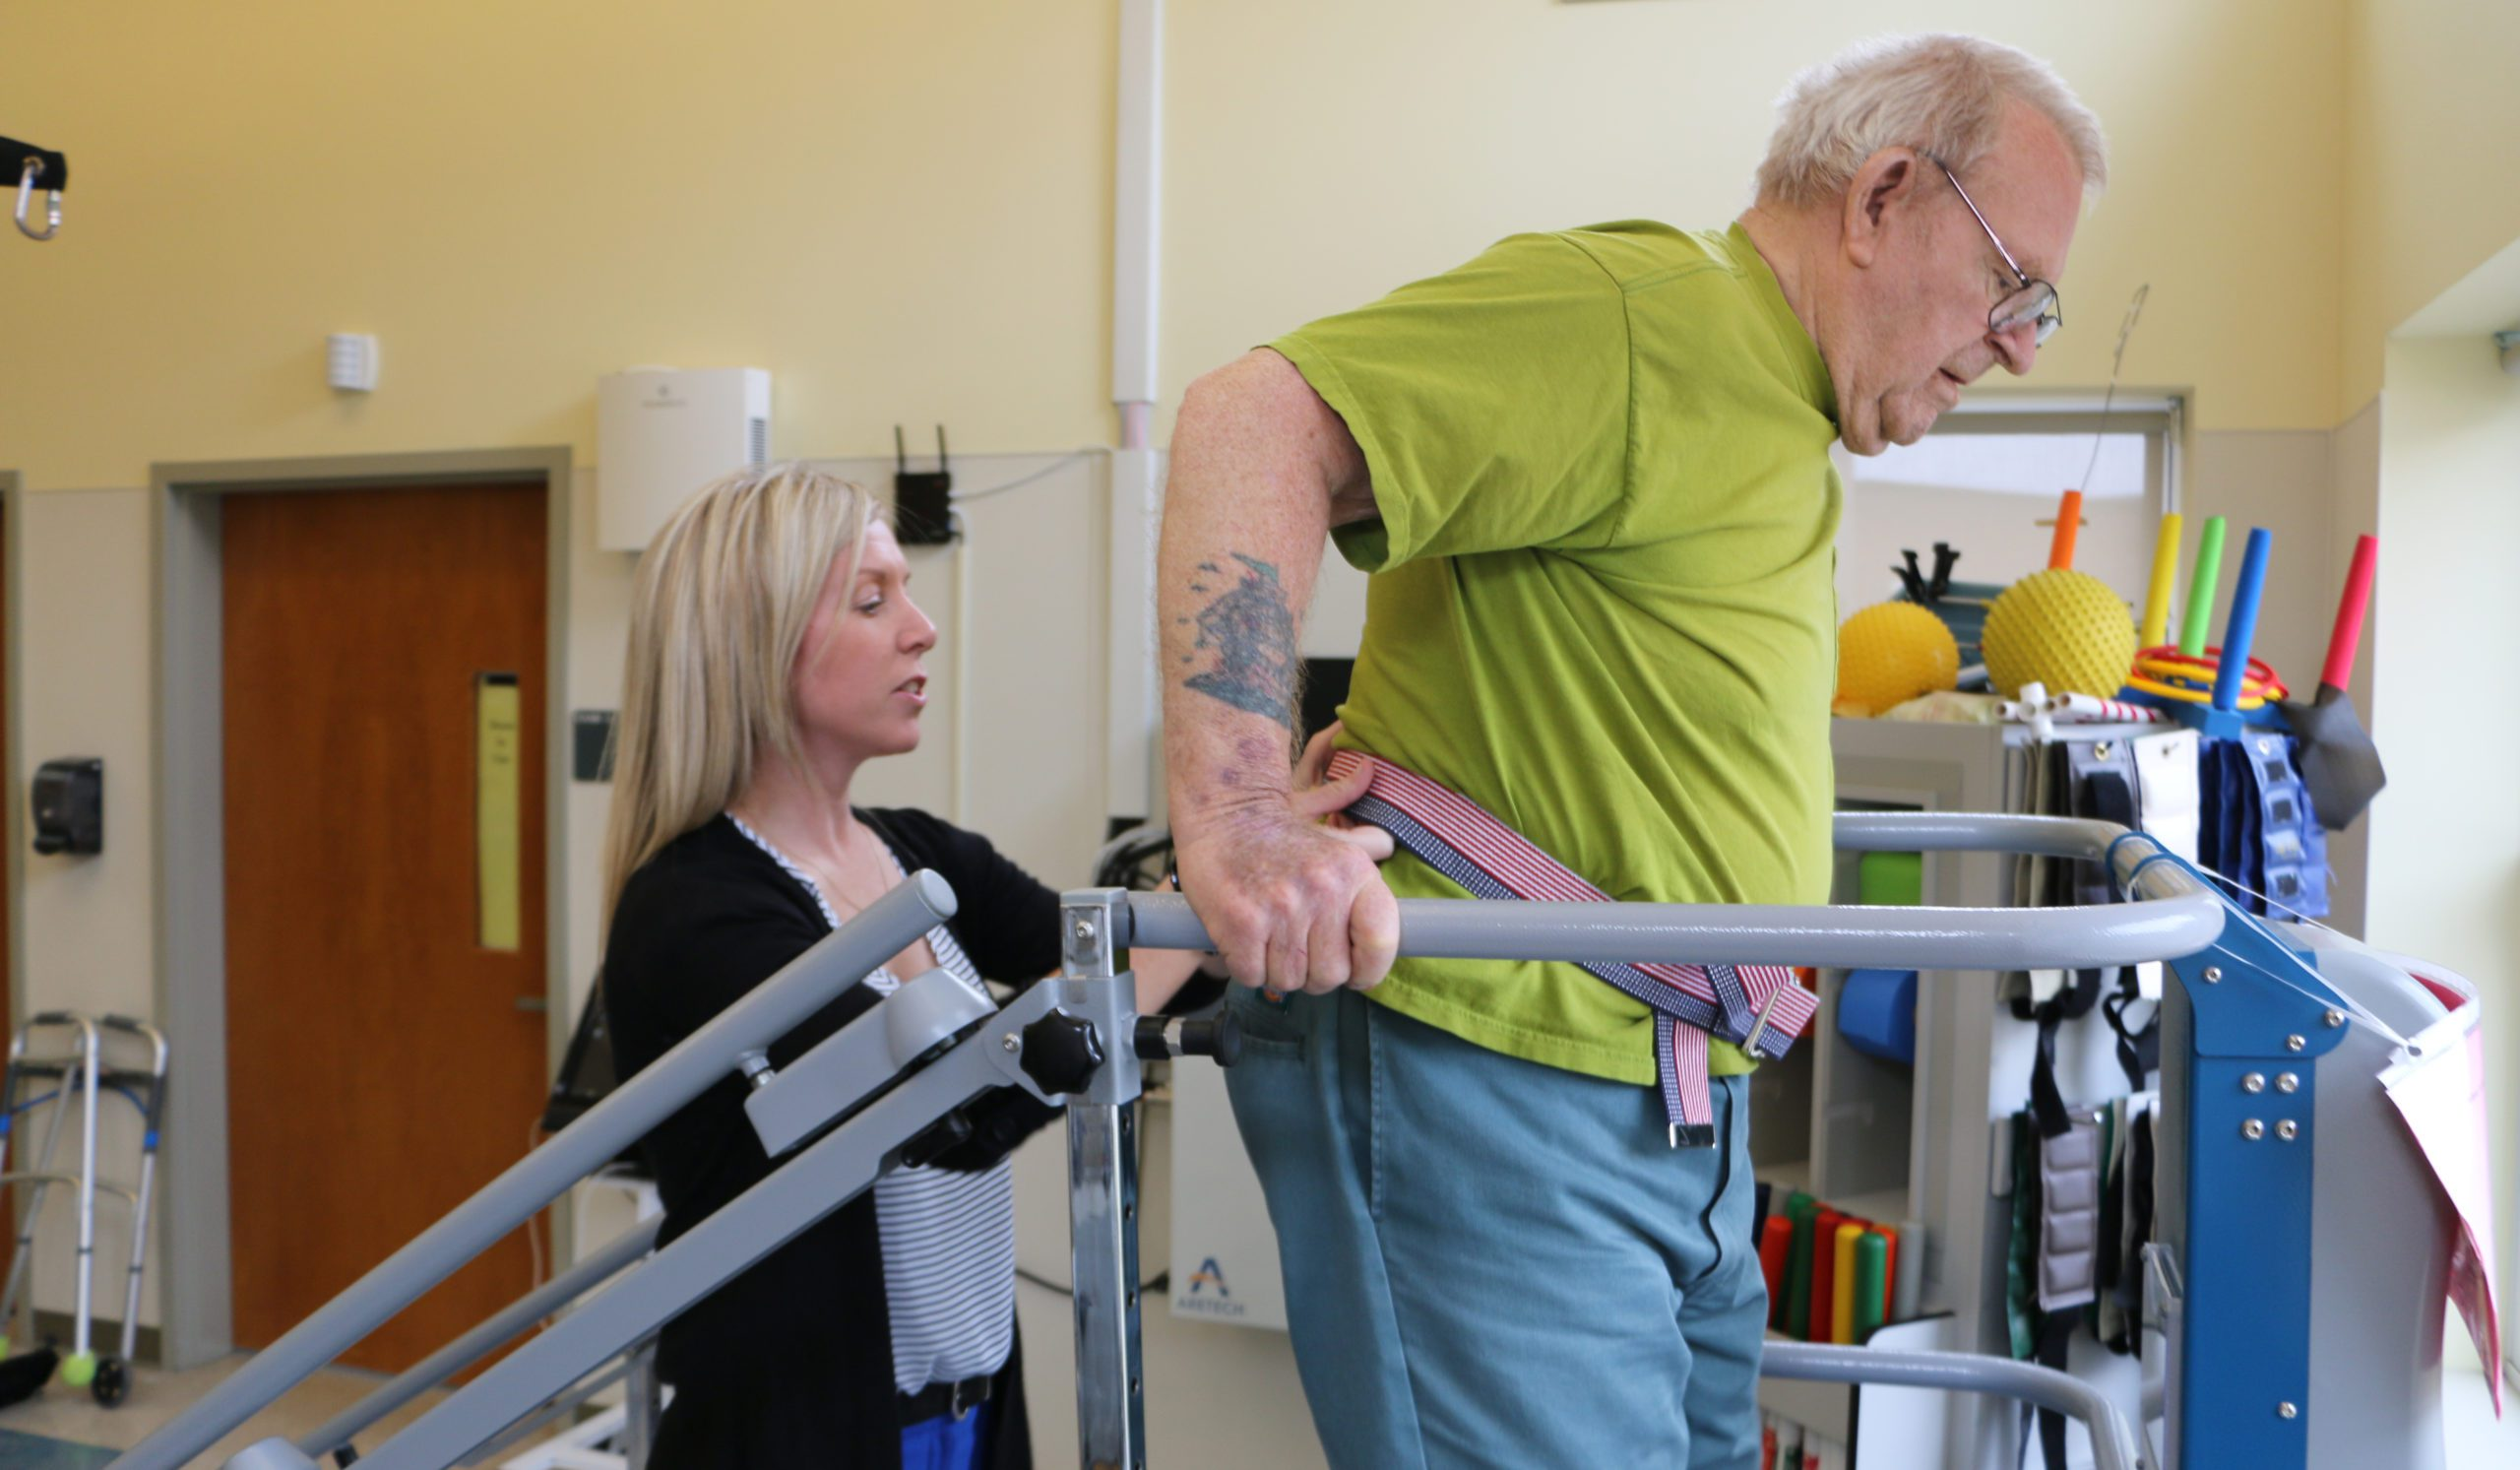 A client receives rehab/therapy at MVH Bangor with the help of a skilled staffer